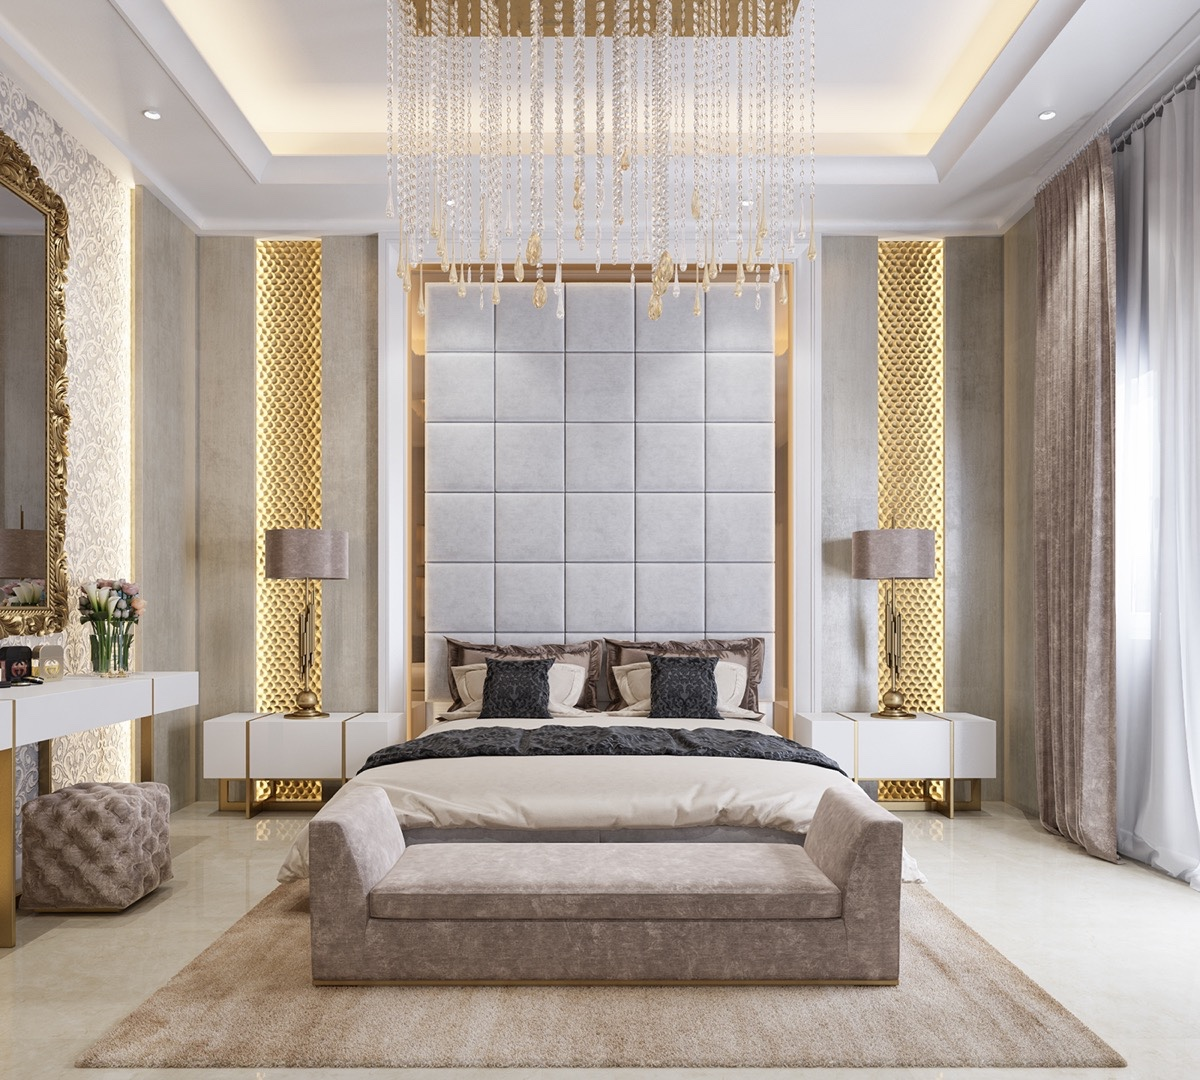 3 kind of elegant bedroom design ideas includes a for Bedroom mural designs